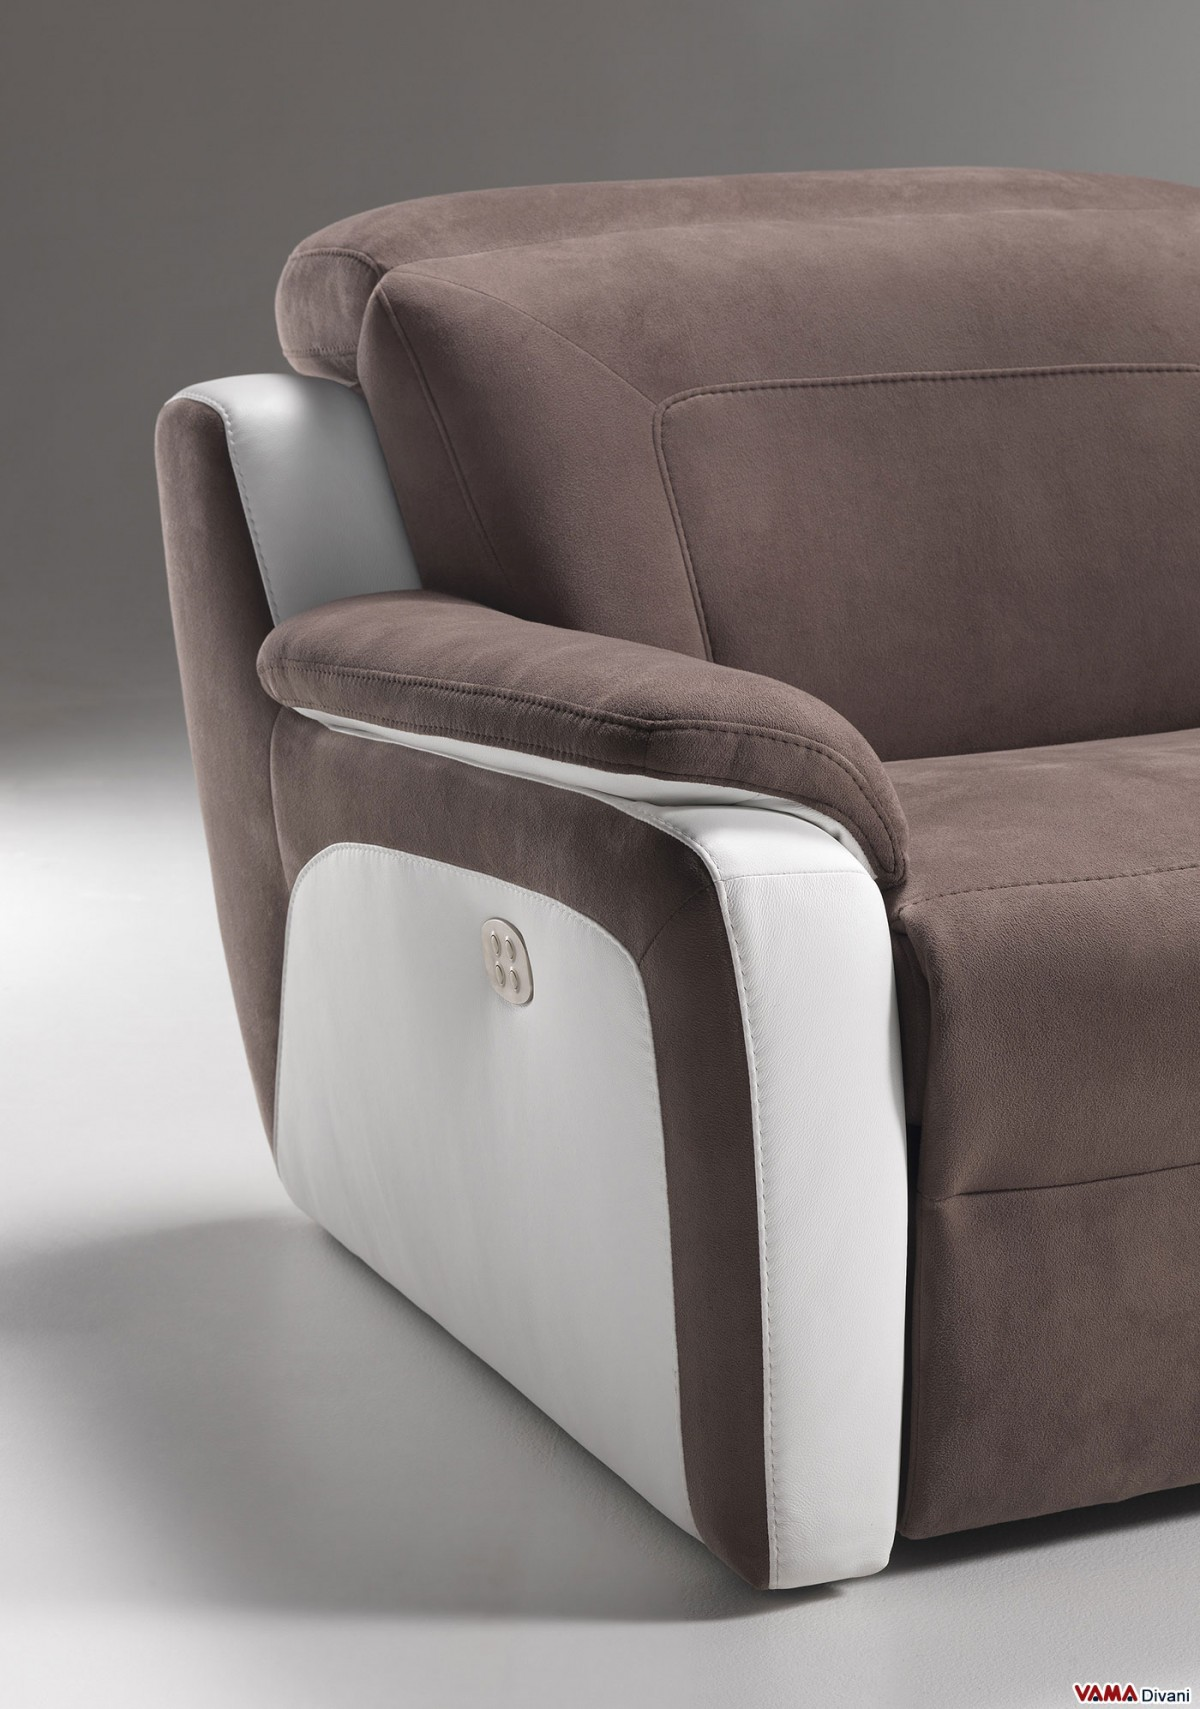 Reclining Sofa With Independent Headrests And Footrests